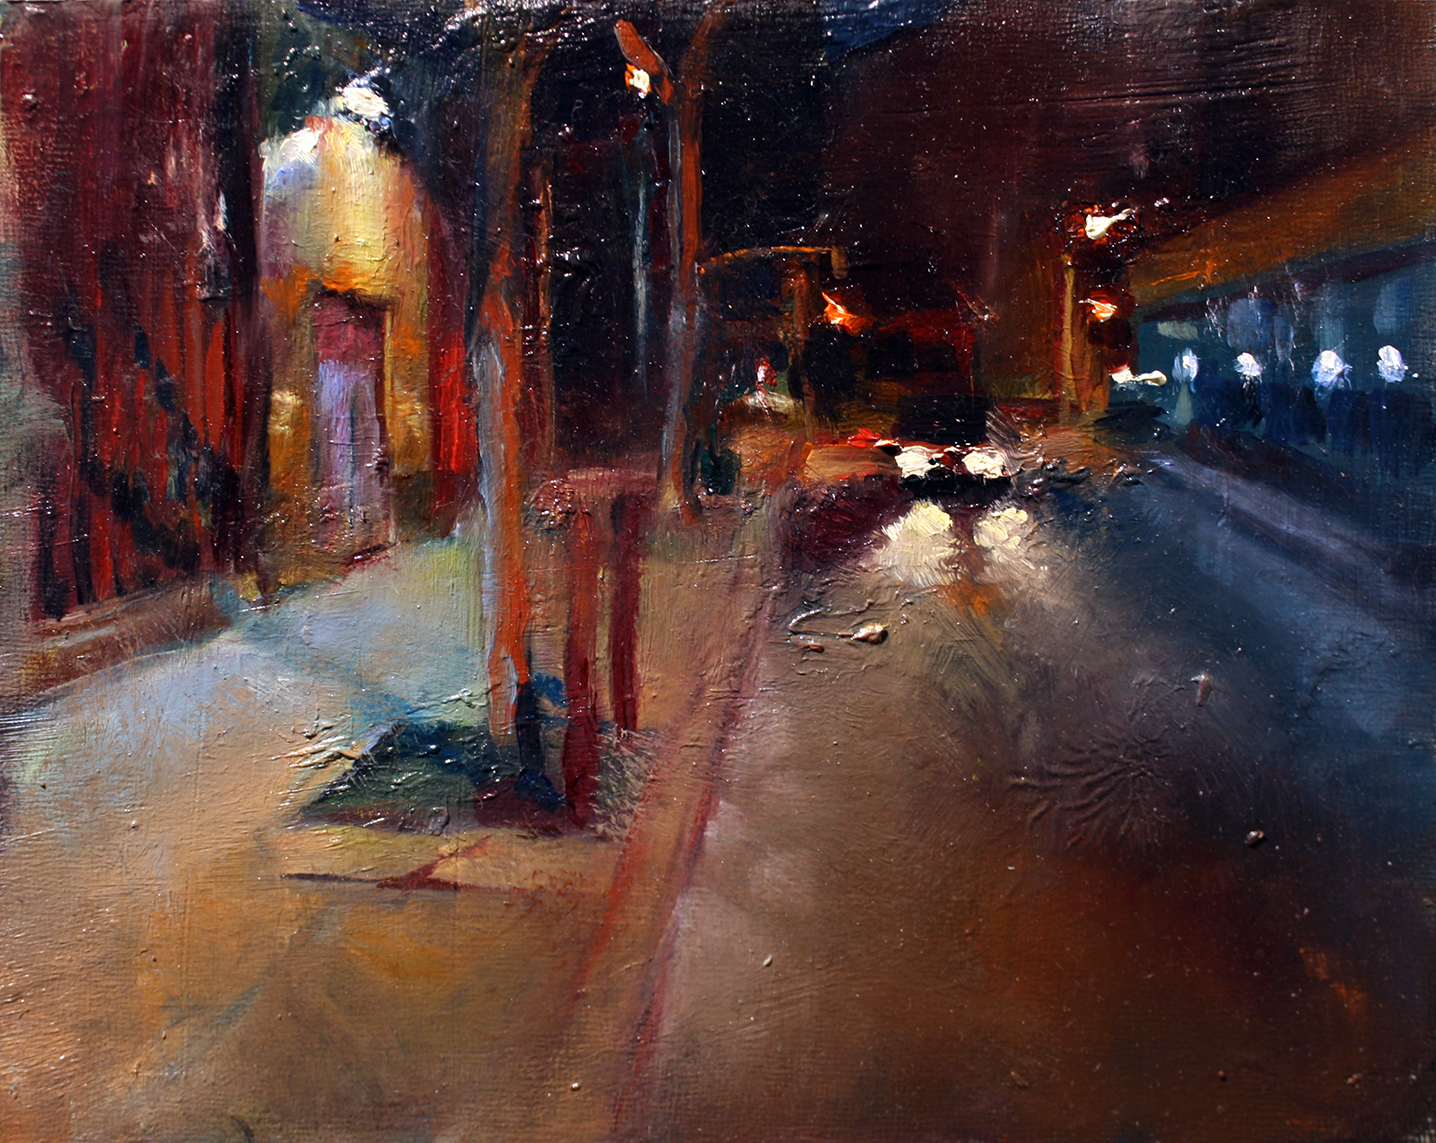 "Franklin Street, oil on wood panel, 8"" x 10"" x 1.5"", 2016 (sold)"